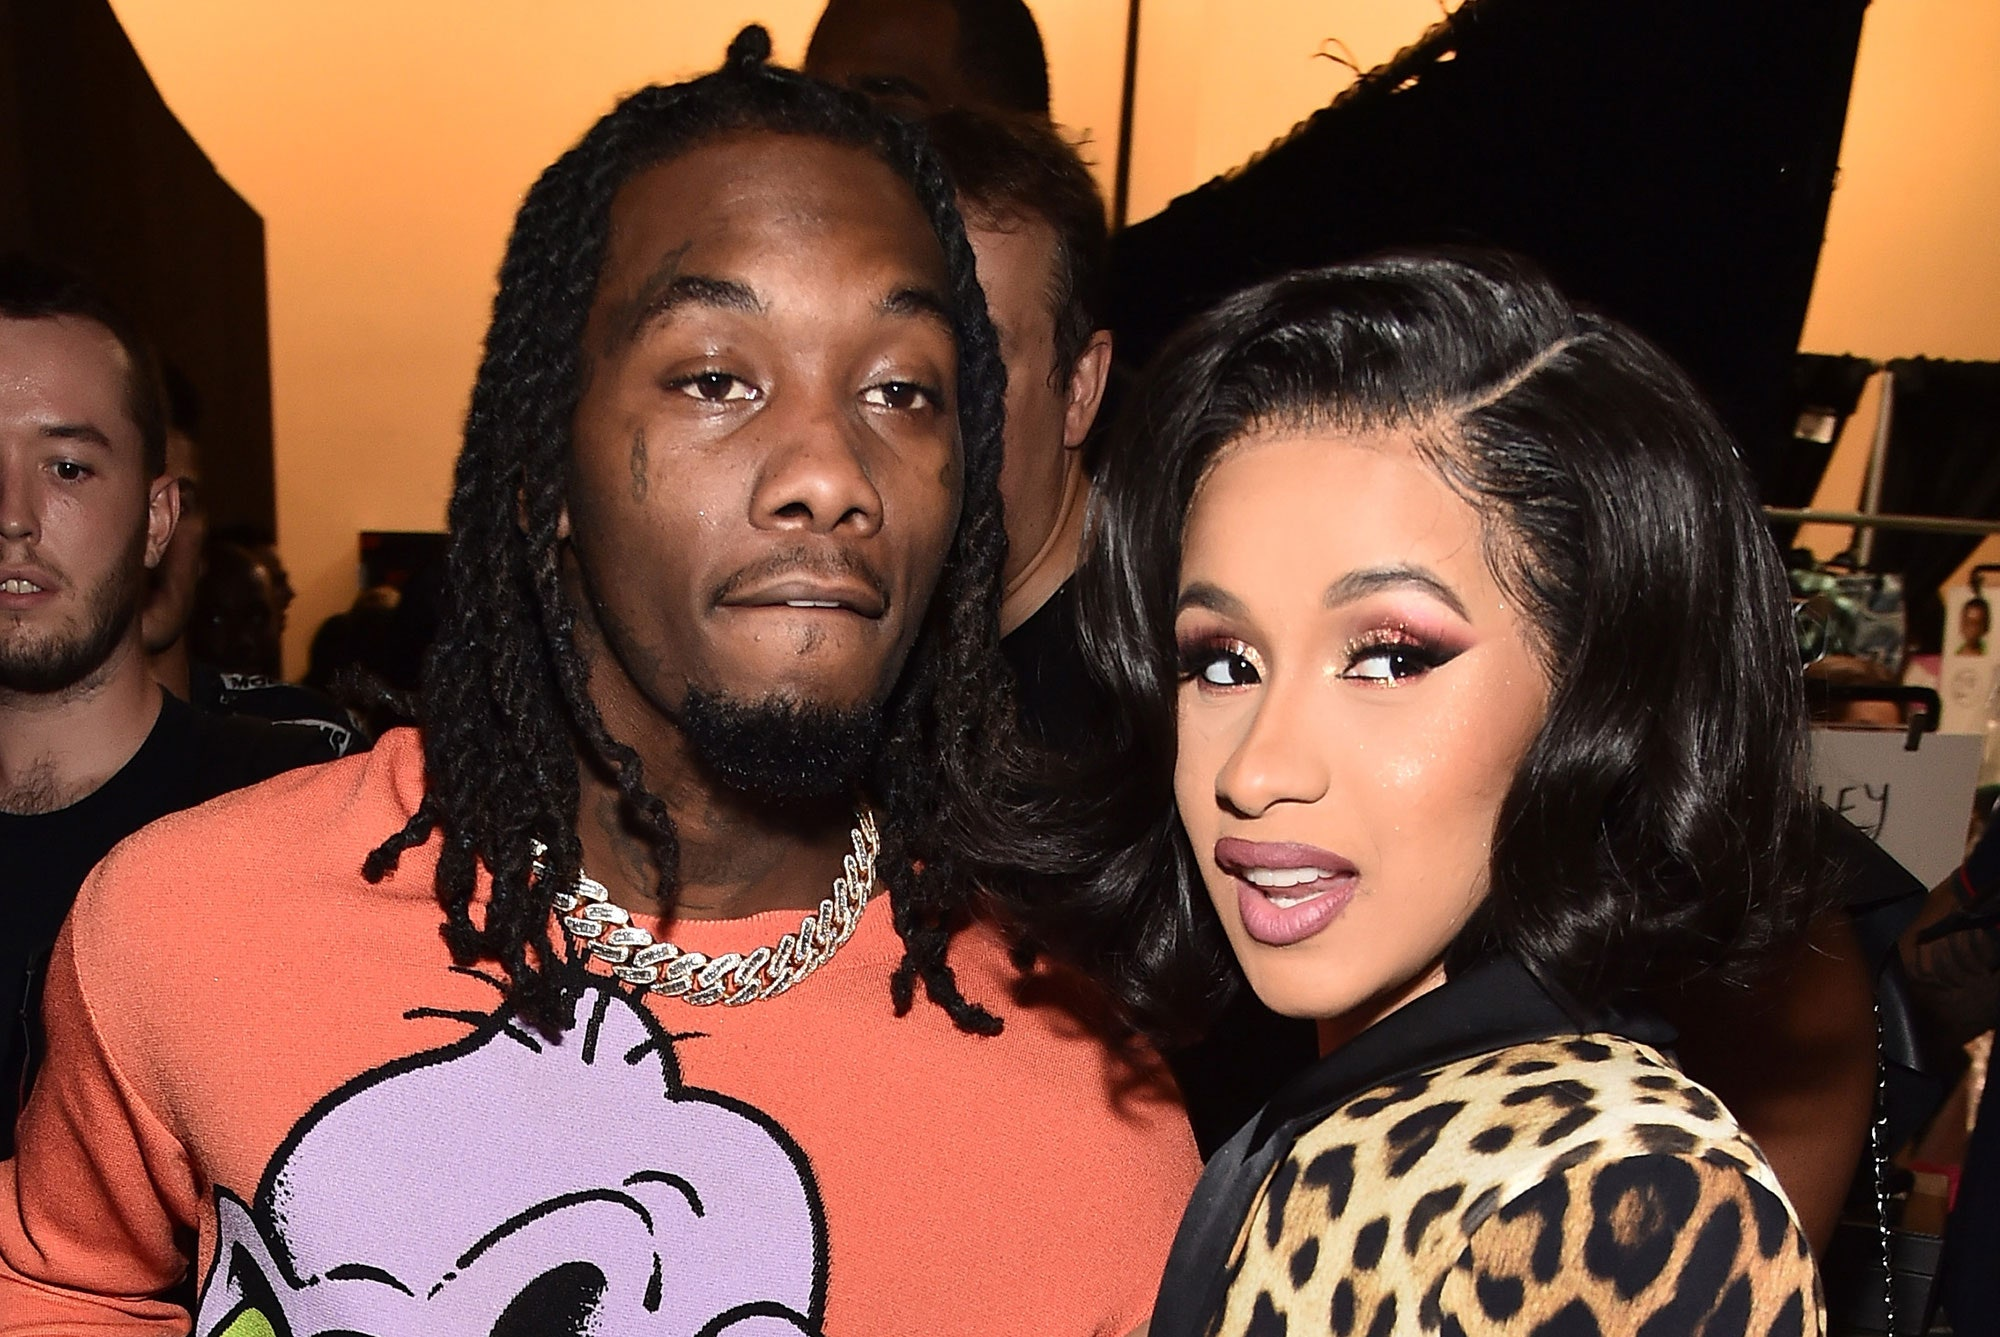 offset-gifts-cardi-b-massive-kulture-billboard-for-her-birthday-and-she-loves-it-will-she-take-him-back